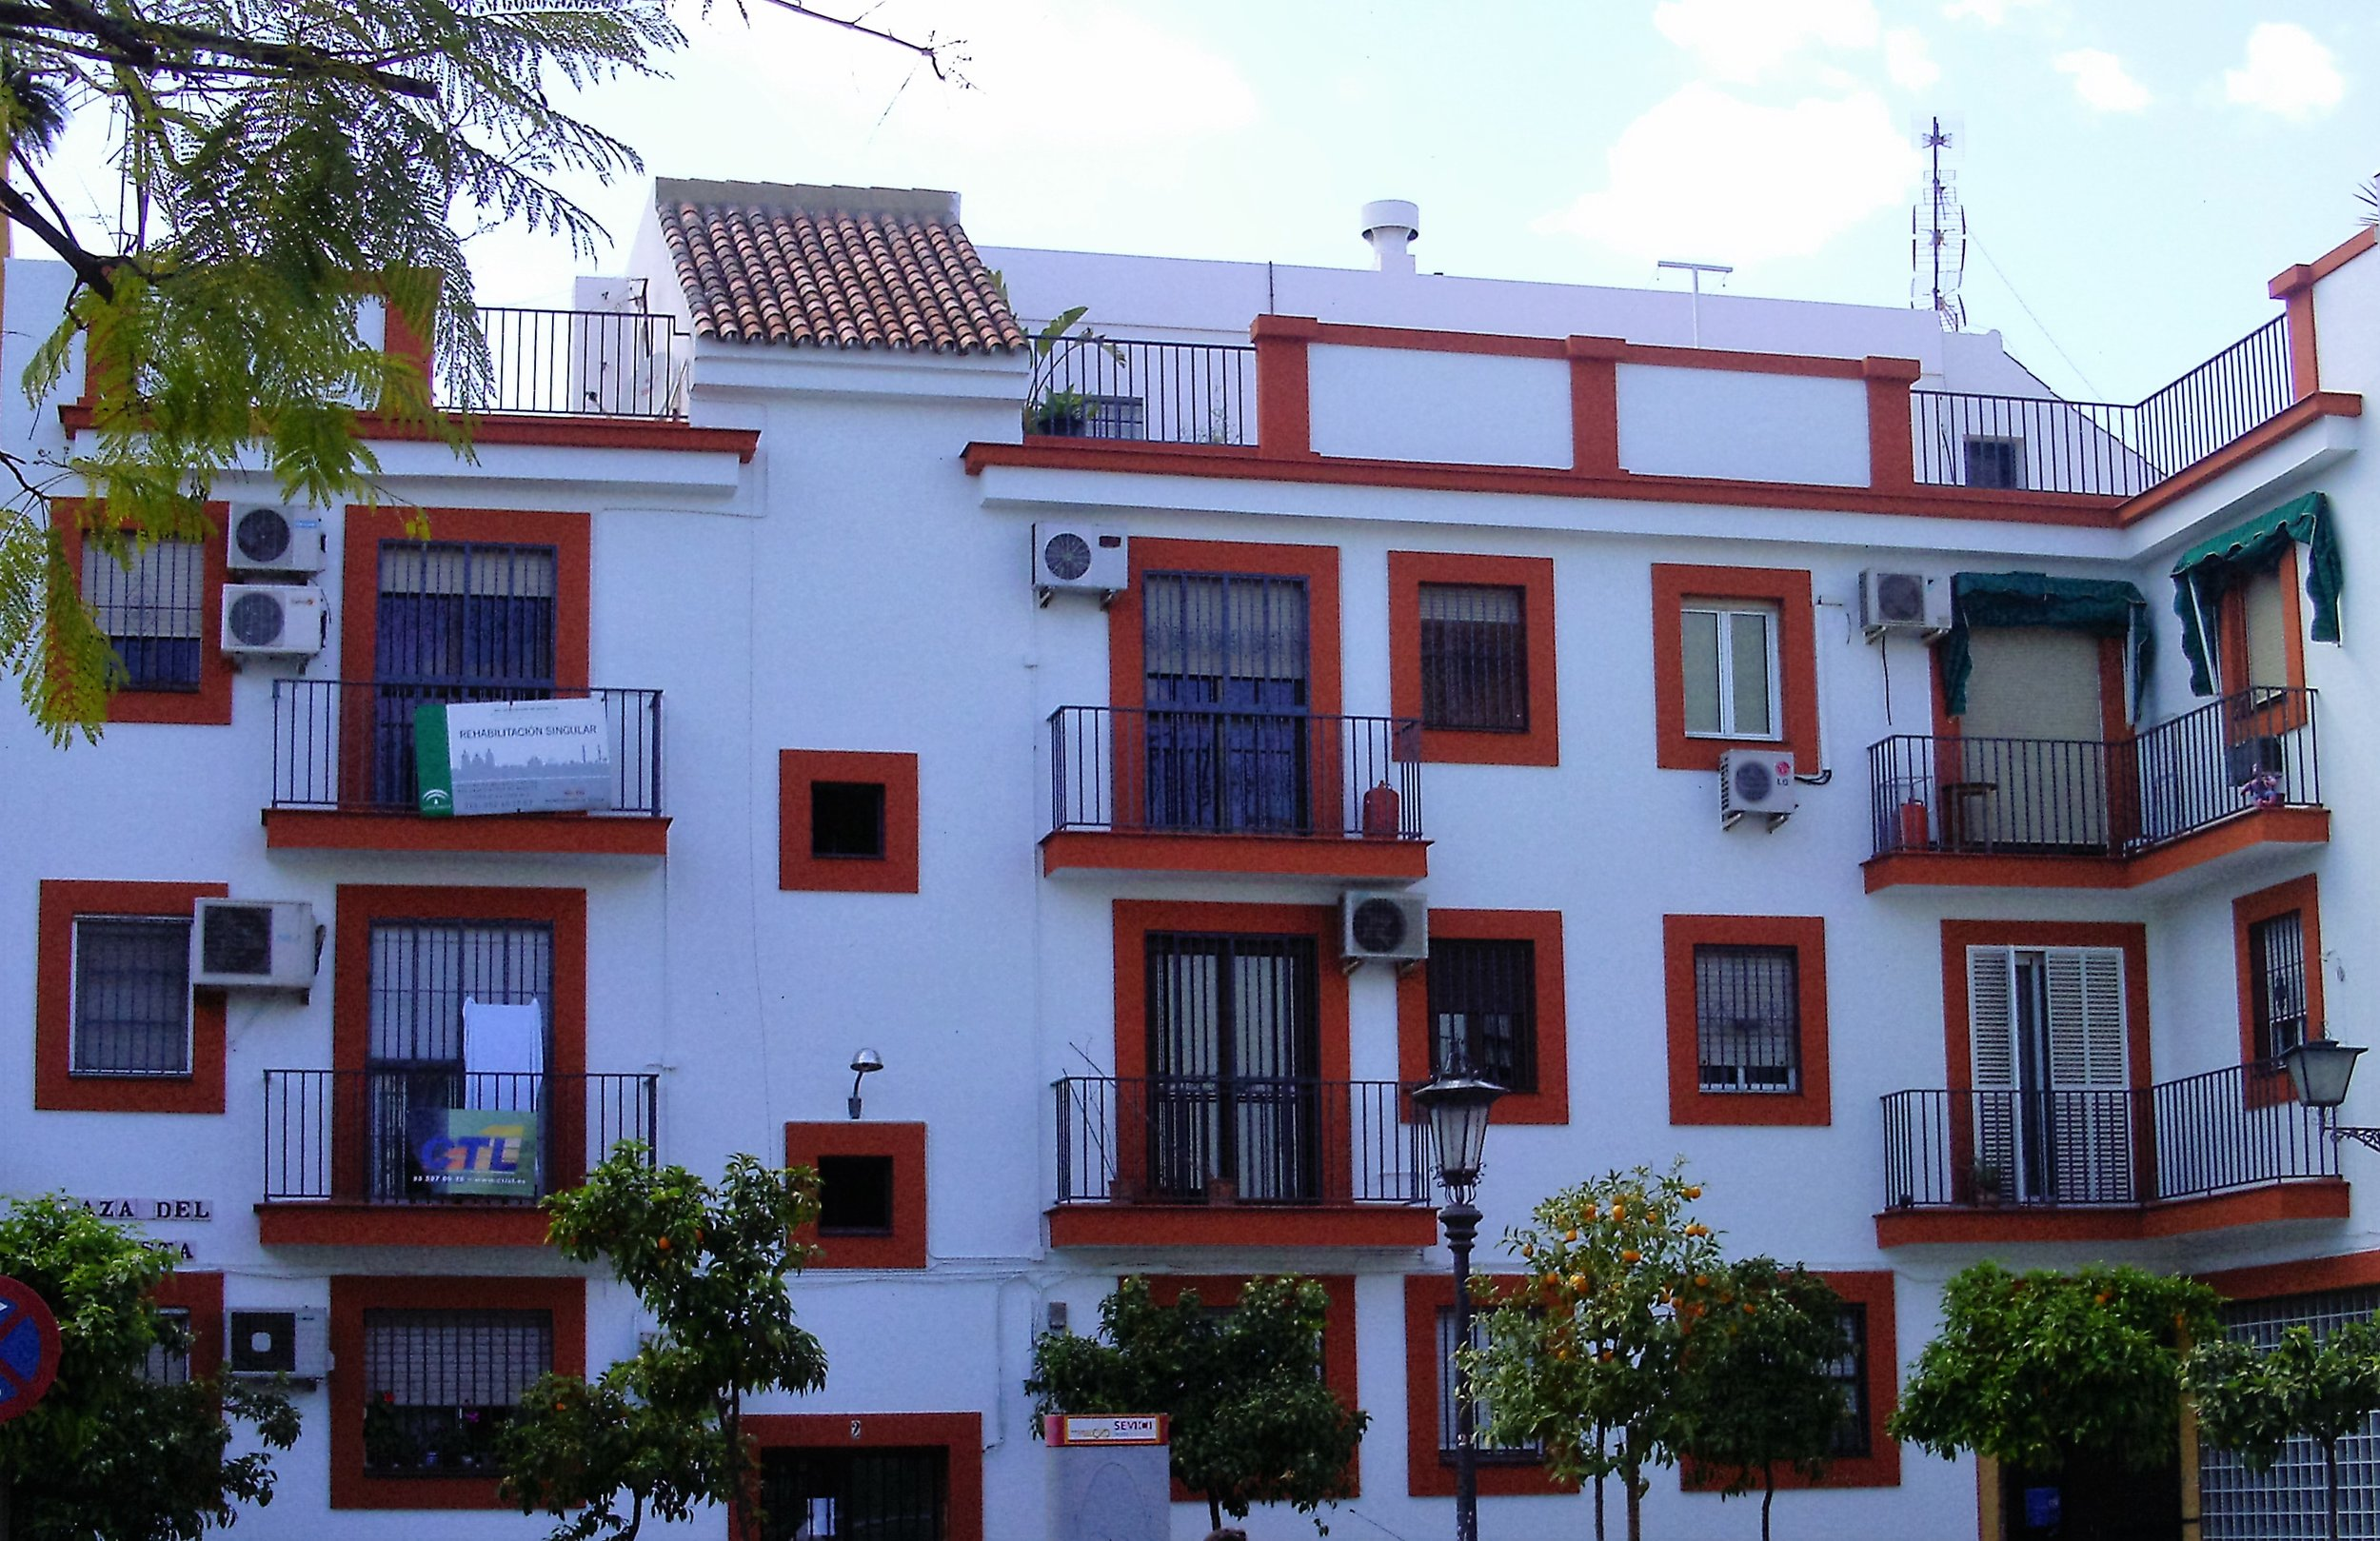 The vast majority of apartments have stand-alone air-conditioning units installed in Southern Spain. With the economic crisis and high unemployment, the question is how many people can afford to use them?   Photo: R.  Cataño-Rosa